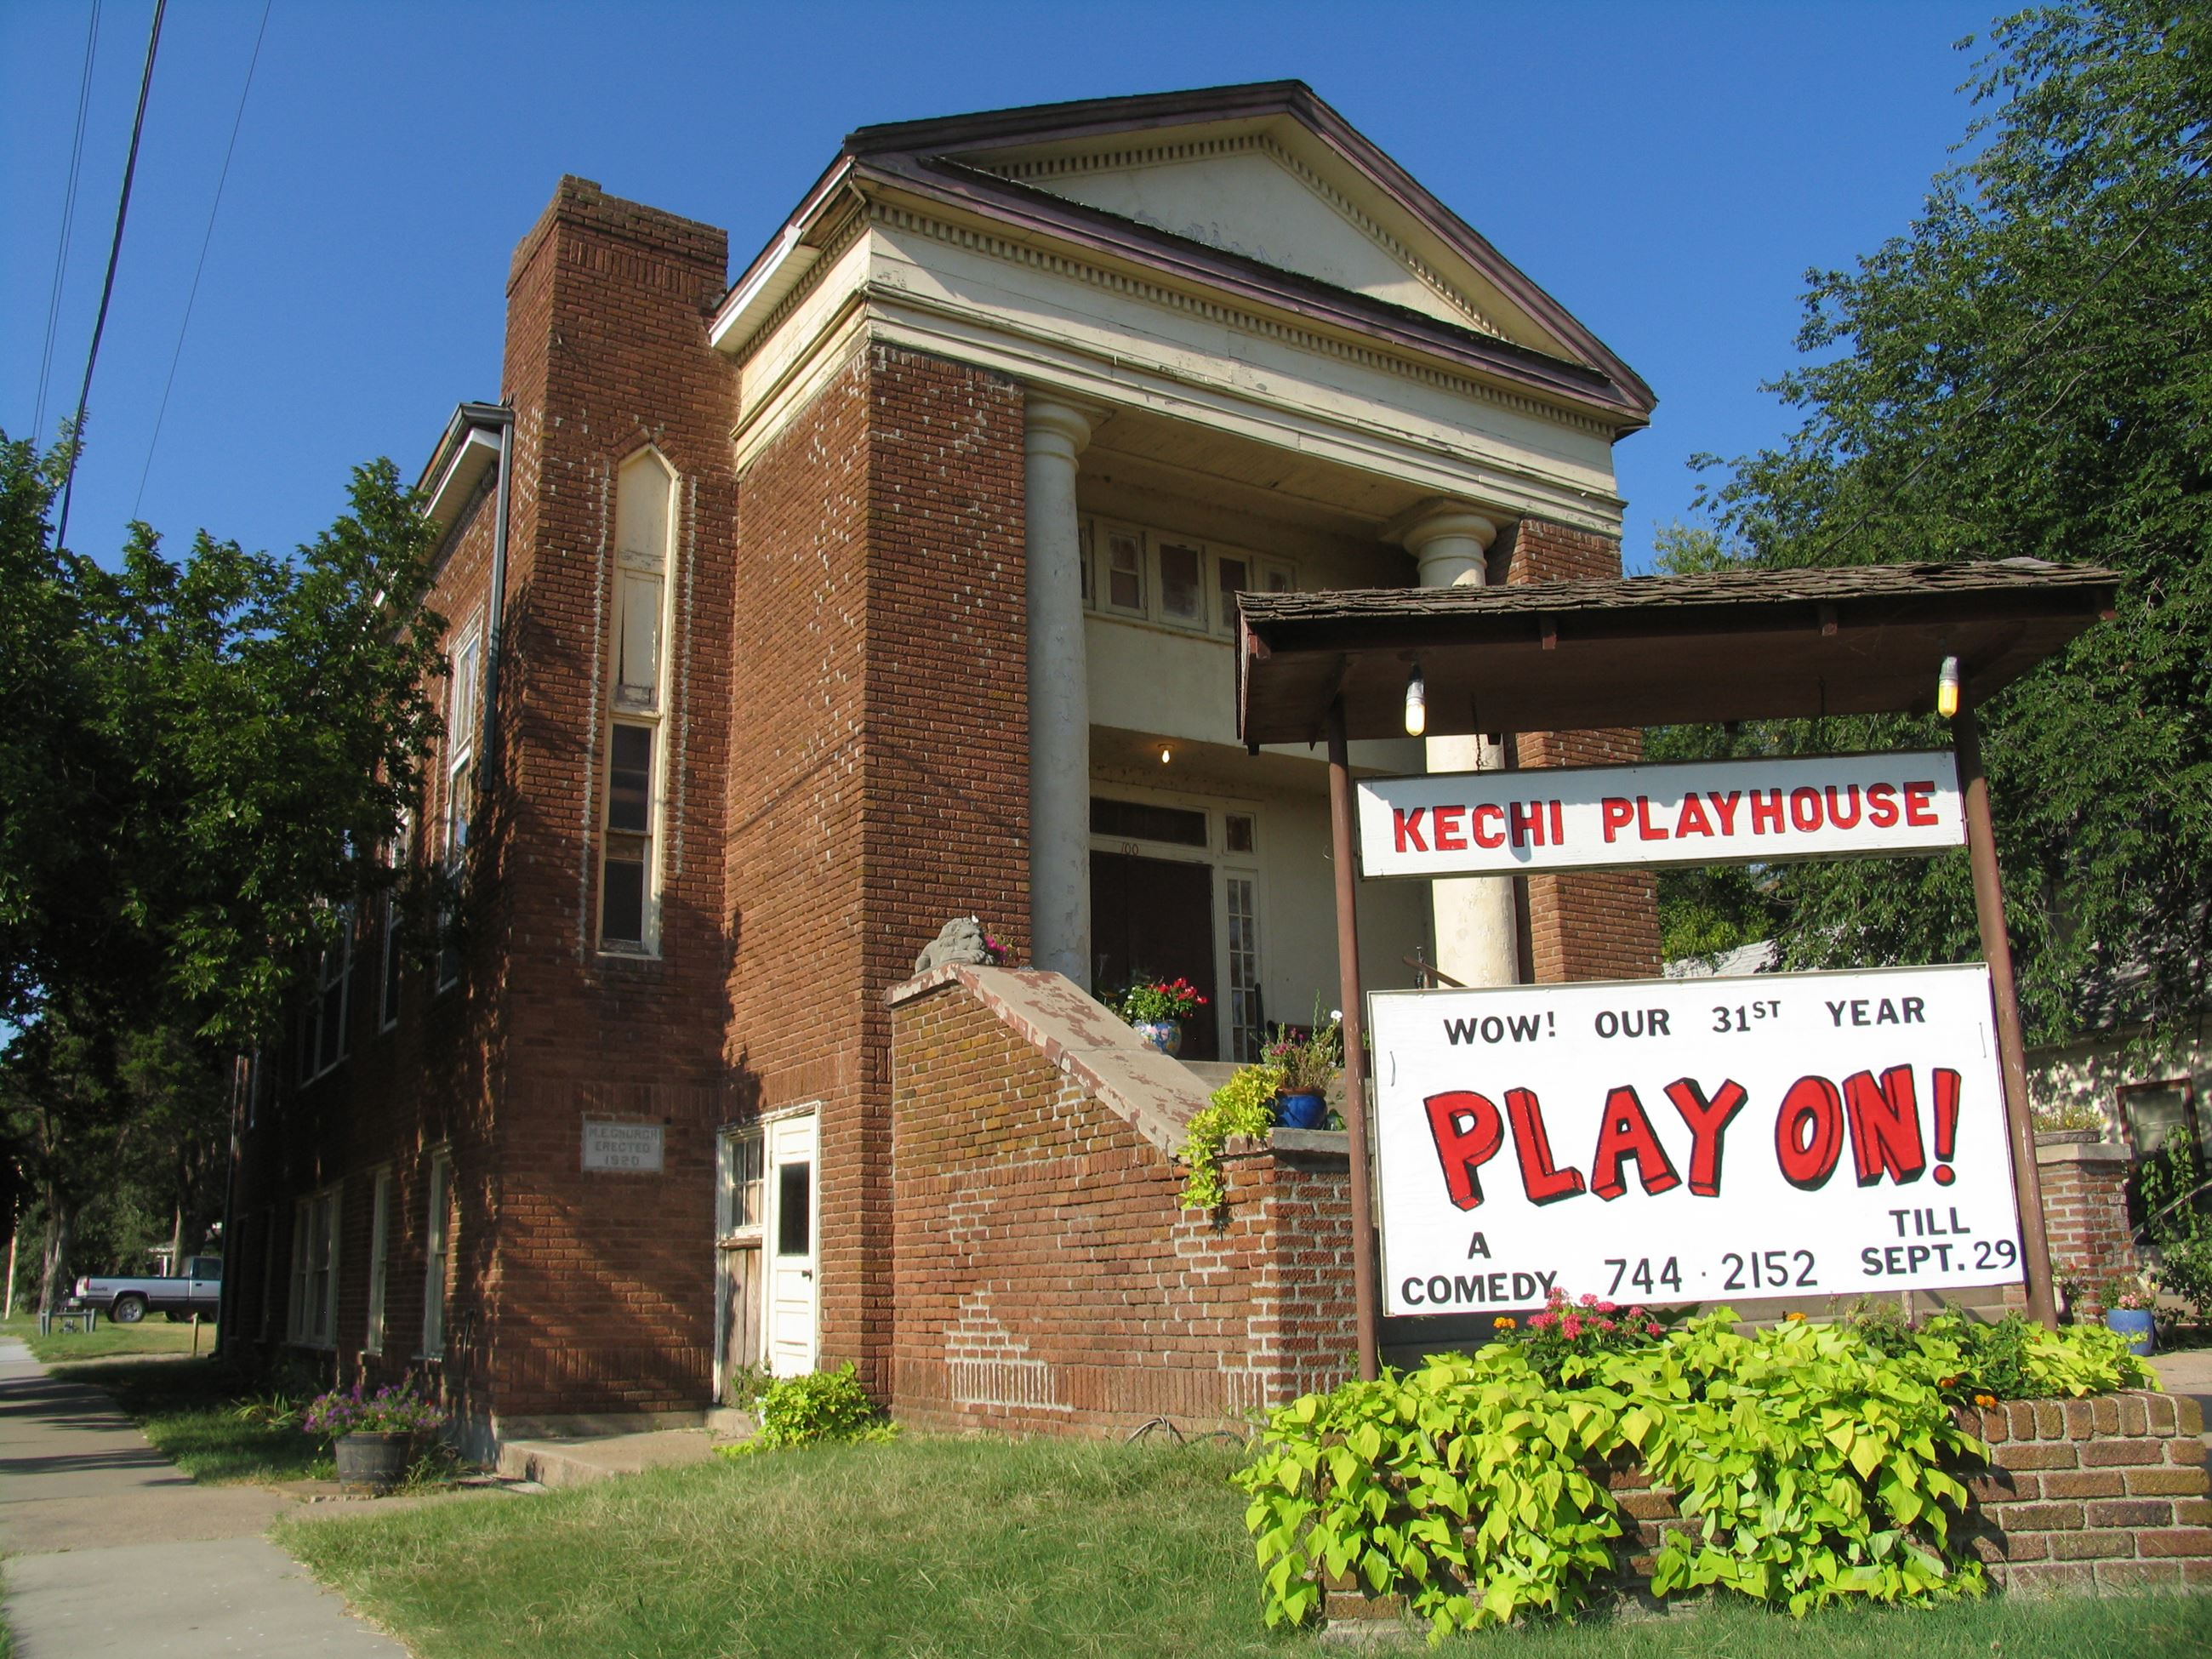 Kechi Playhouse